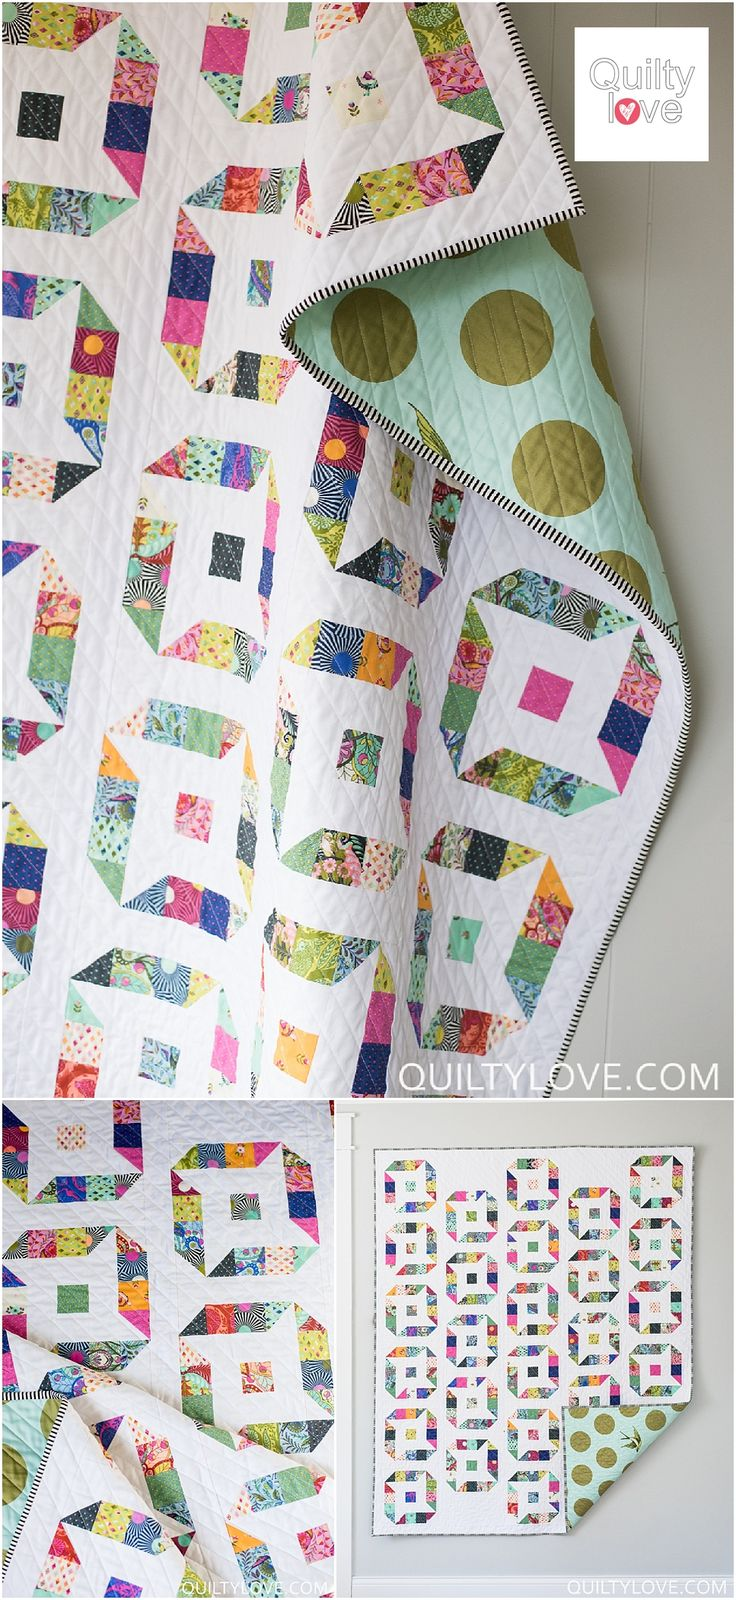 Quilty Love | Ninja Stars Quilt Pattern | http://www.quiltylove.com Jelly roll friendly quilt pattern for the modern quilter.